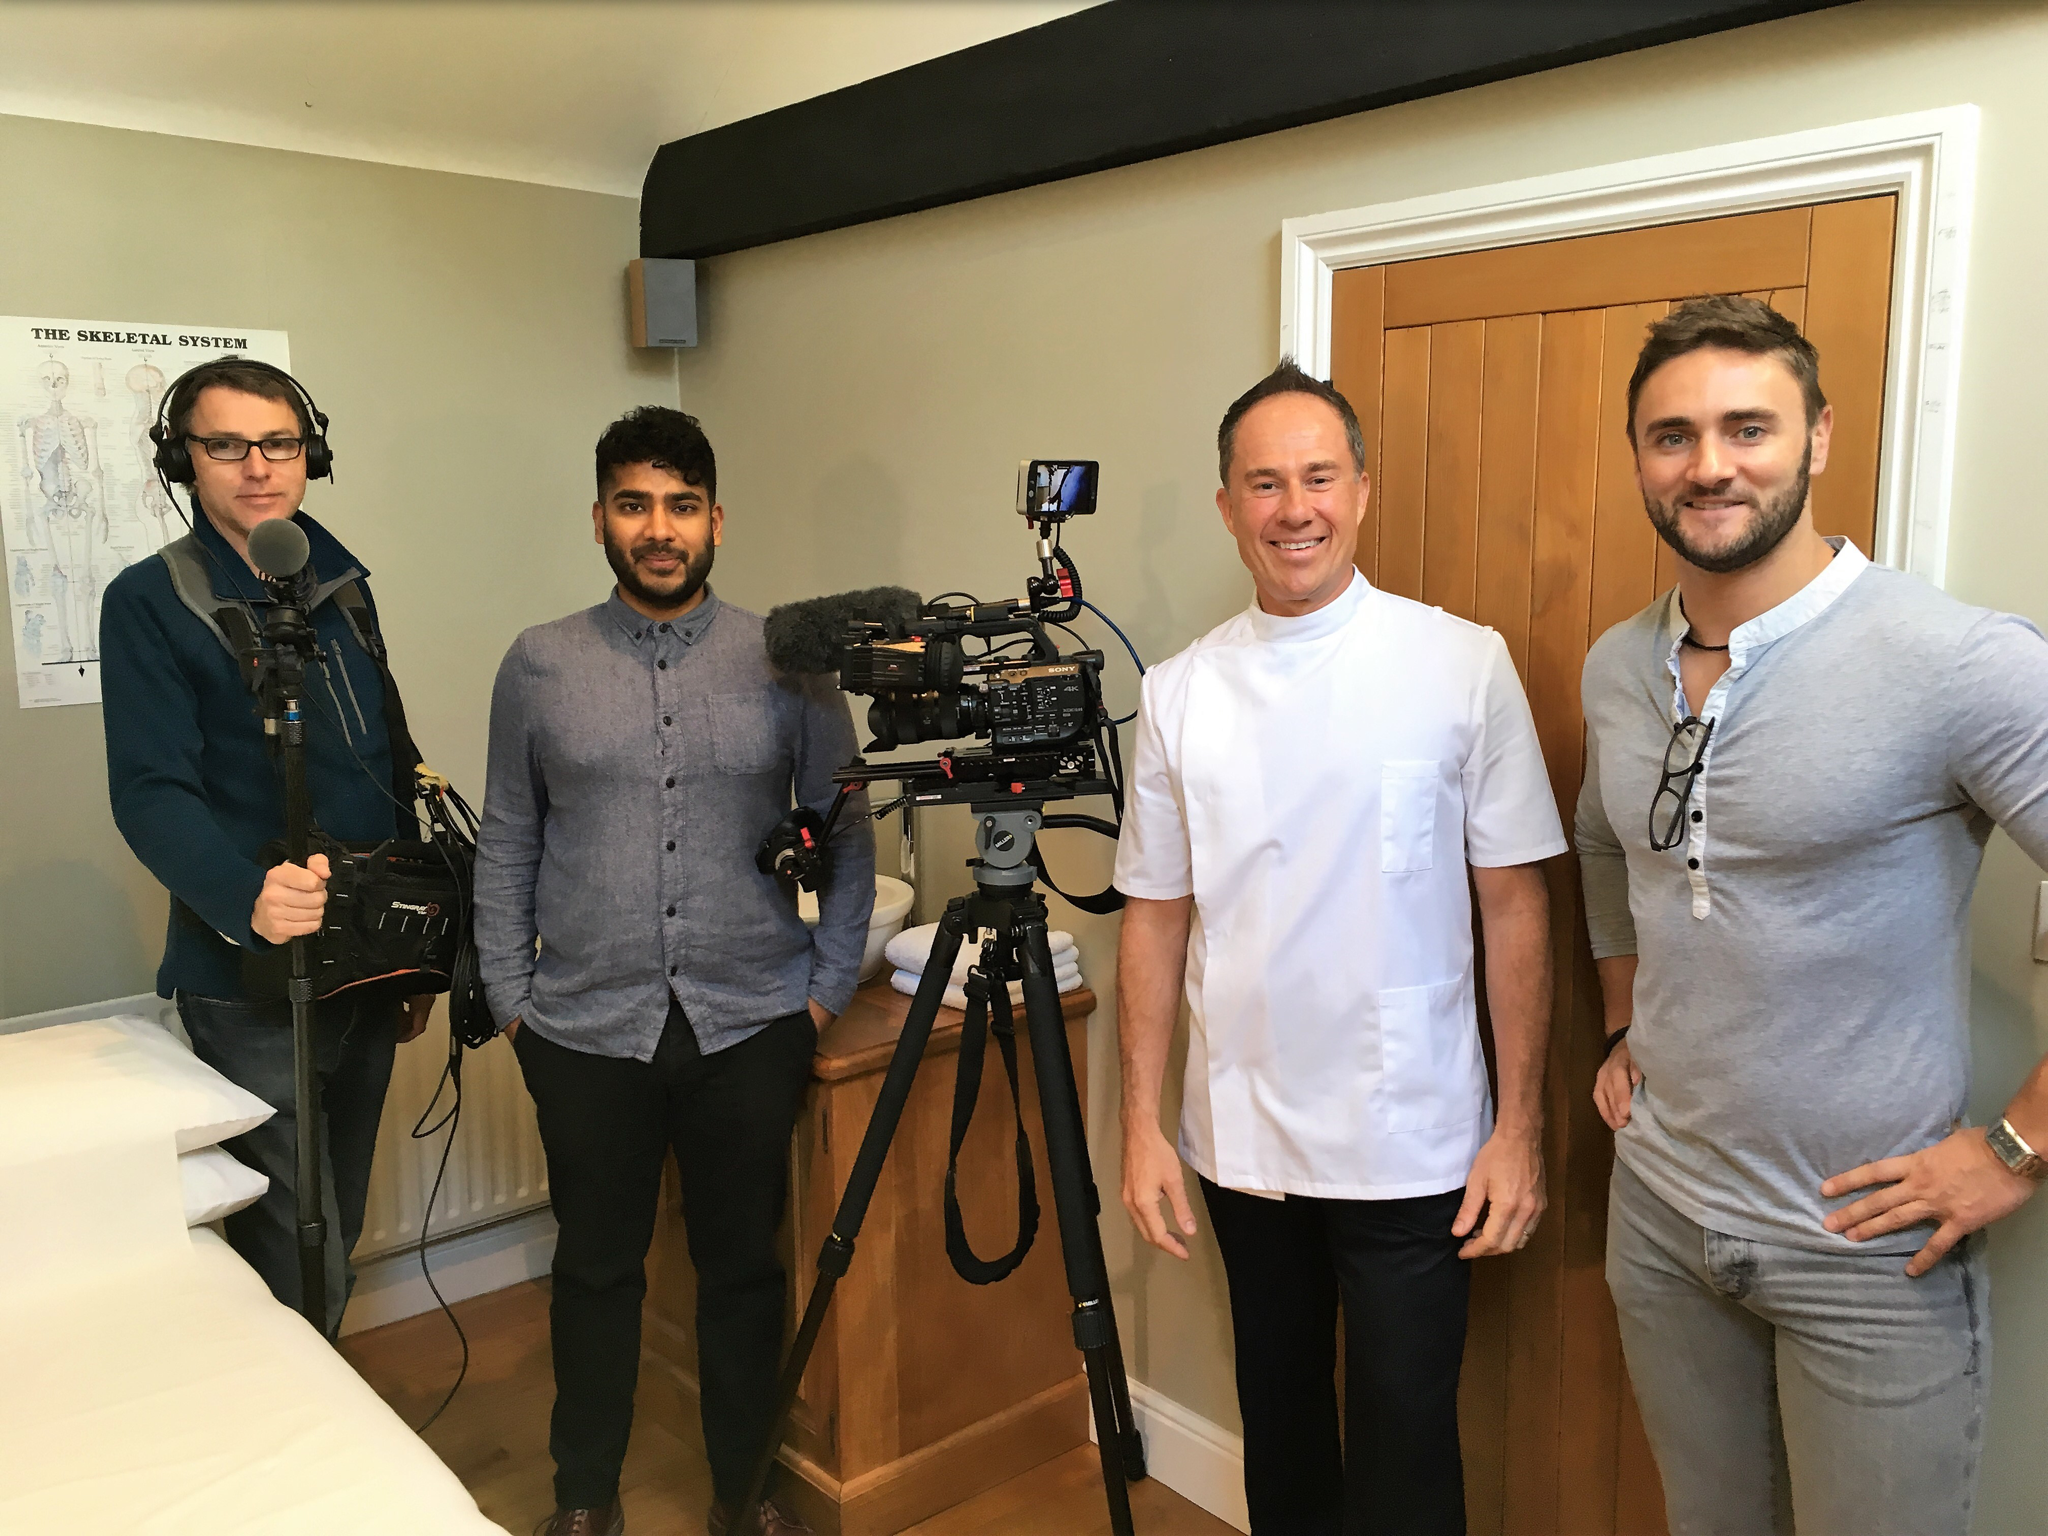 Paul with the CH4 TV crew